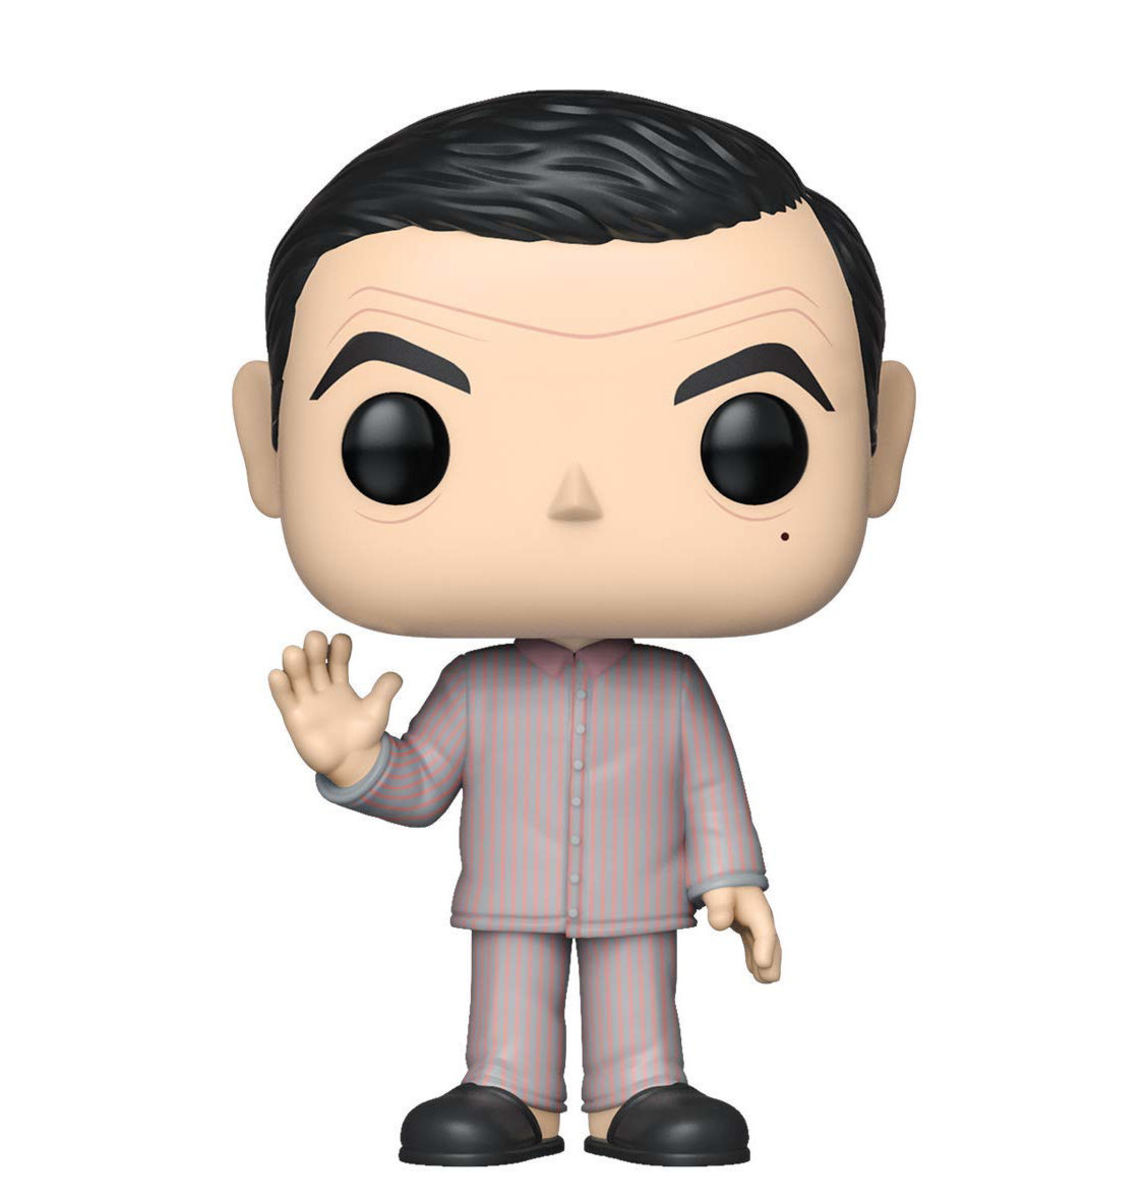 figurka Mr. Bean - POP! - Pajama w Teddy Bear - FK40146